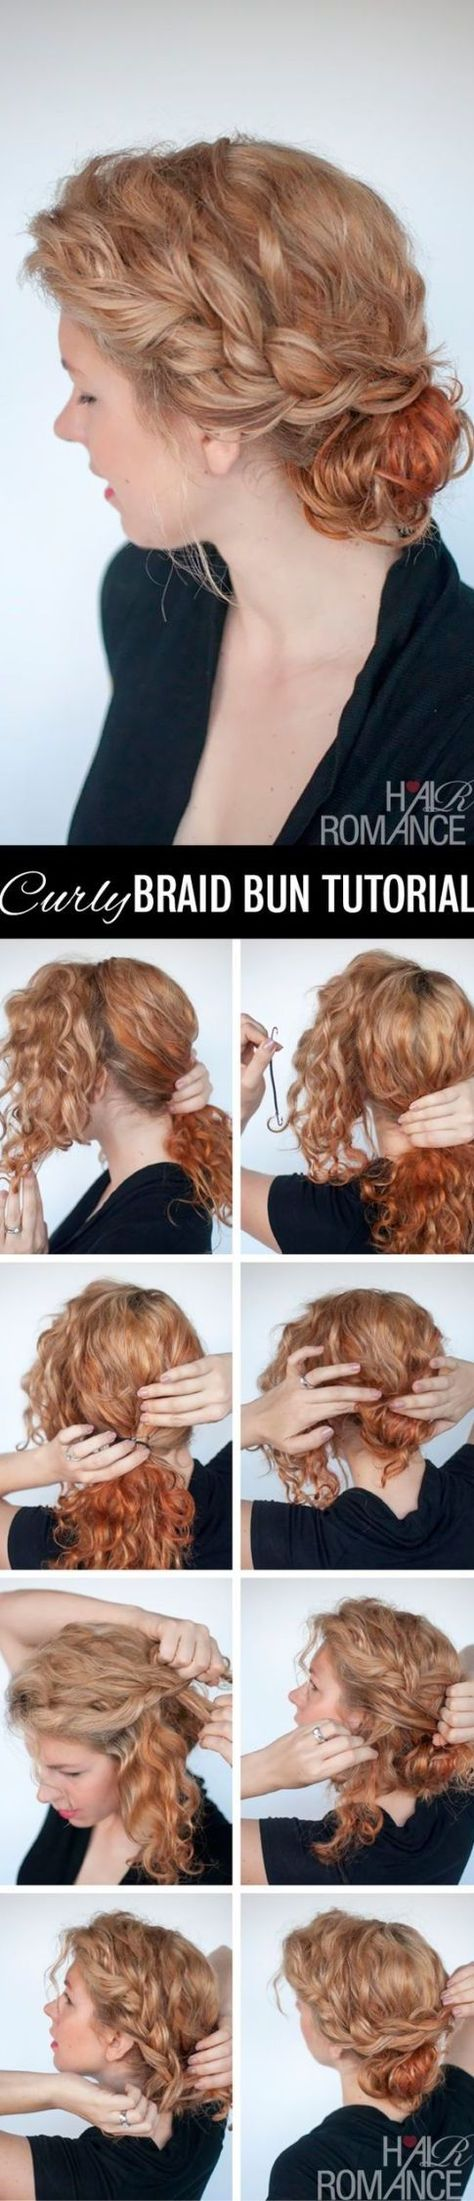 best images about curly hair on pinterest